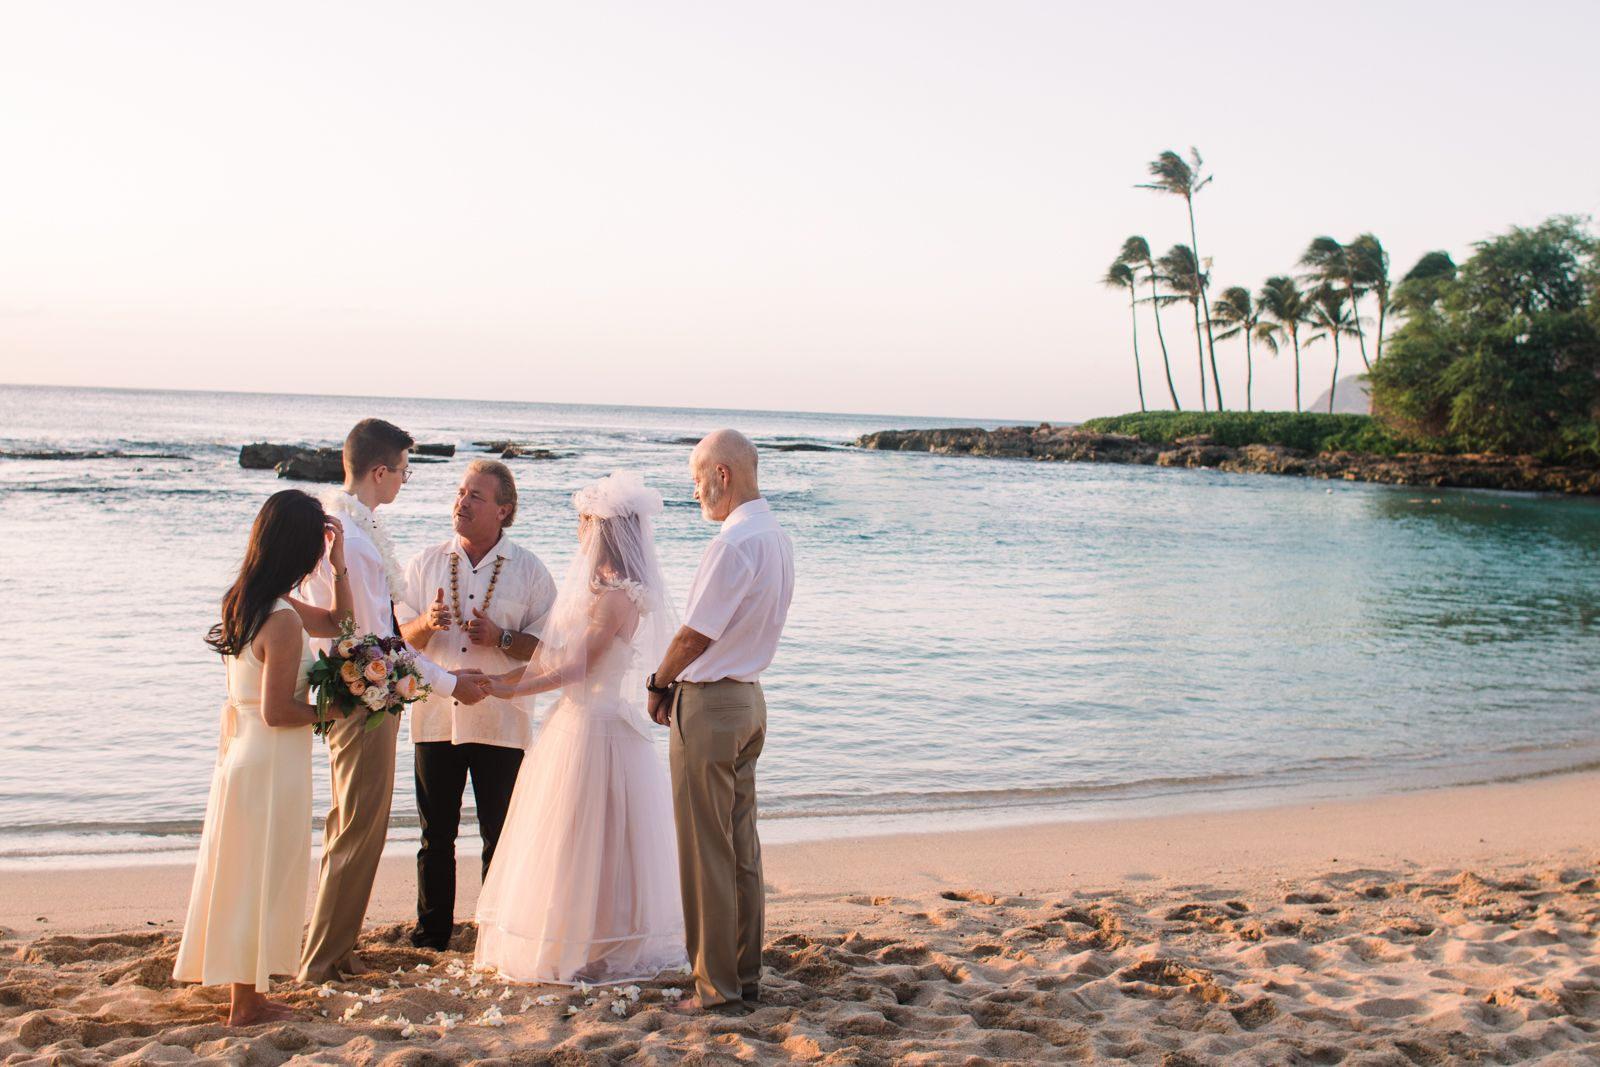 I Specialize In Those Small Intimate Weddings And Hawaii Is The Perfect Backdrop